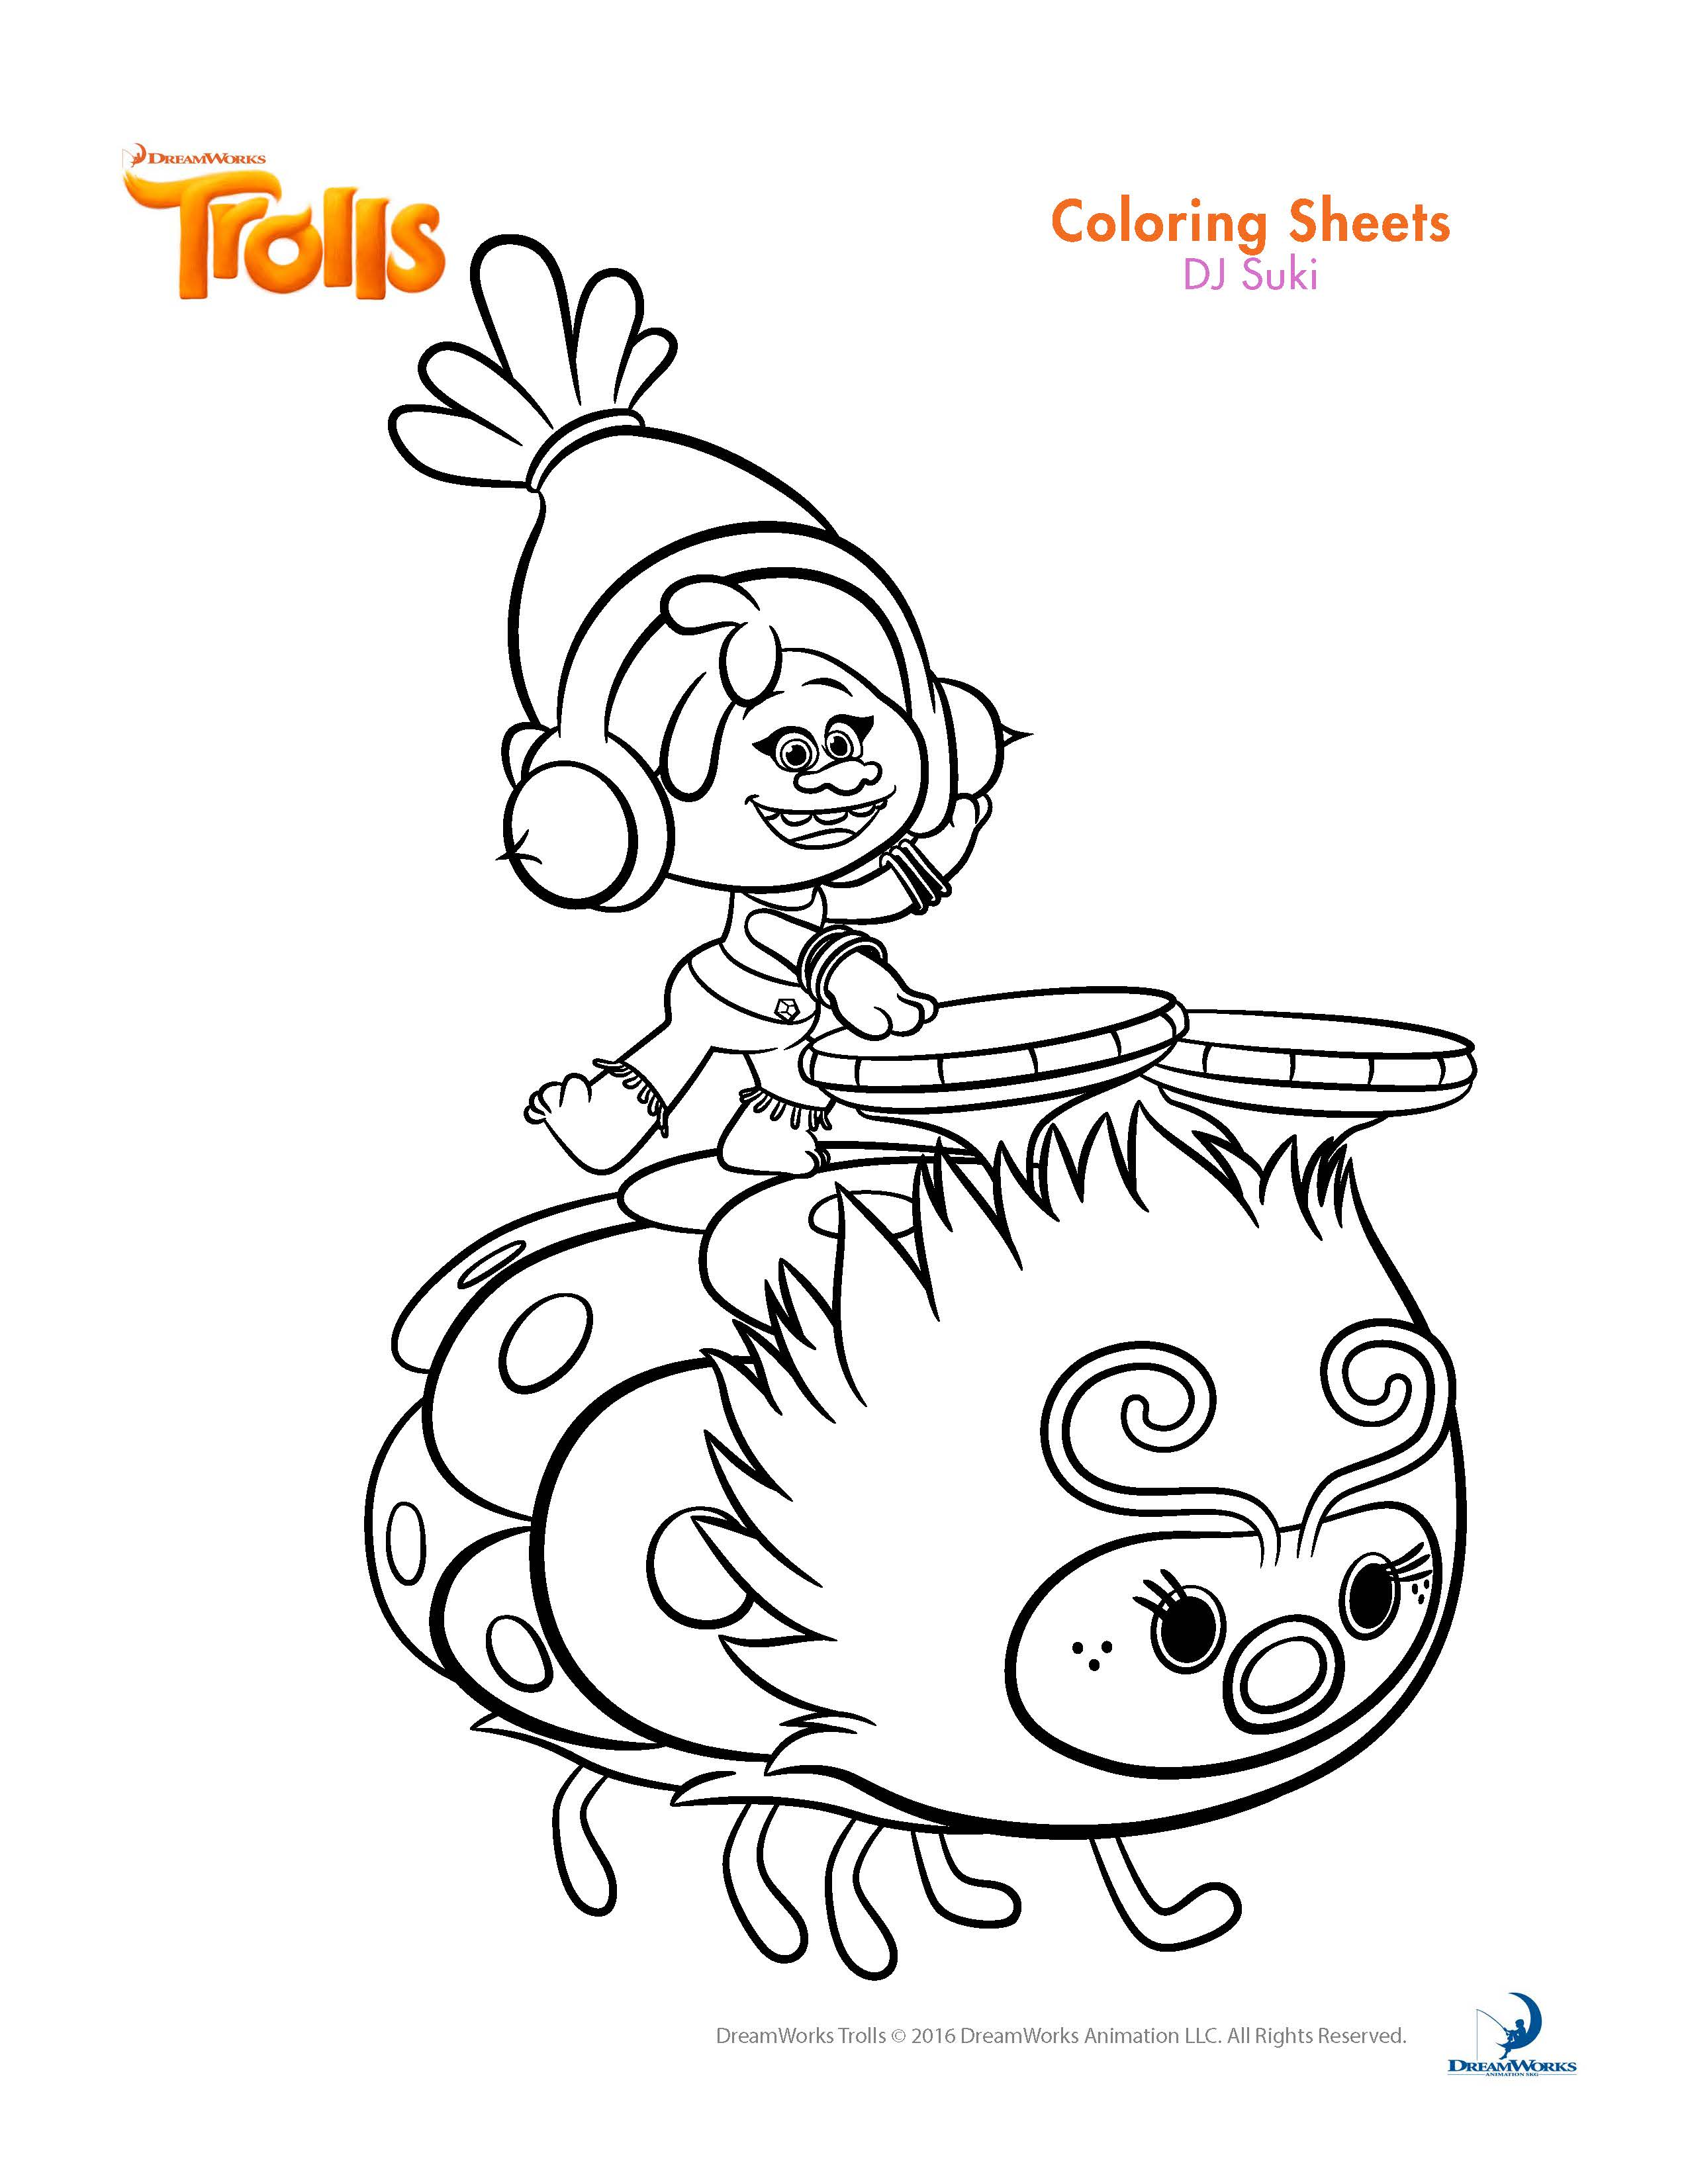 Colouring Pages For Trolls : Trolls movie coloring pages home